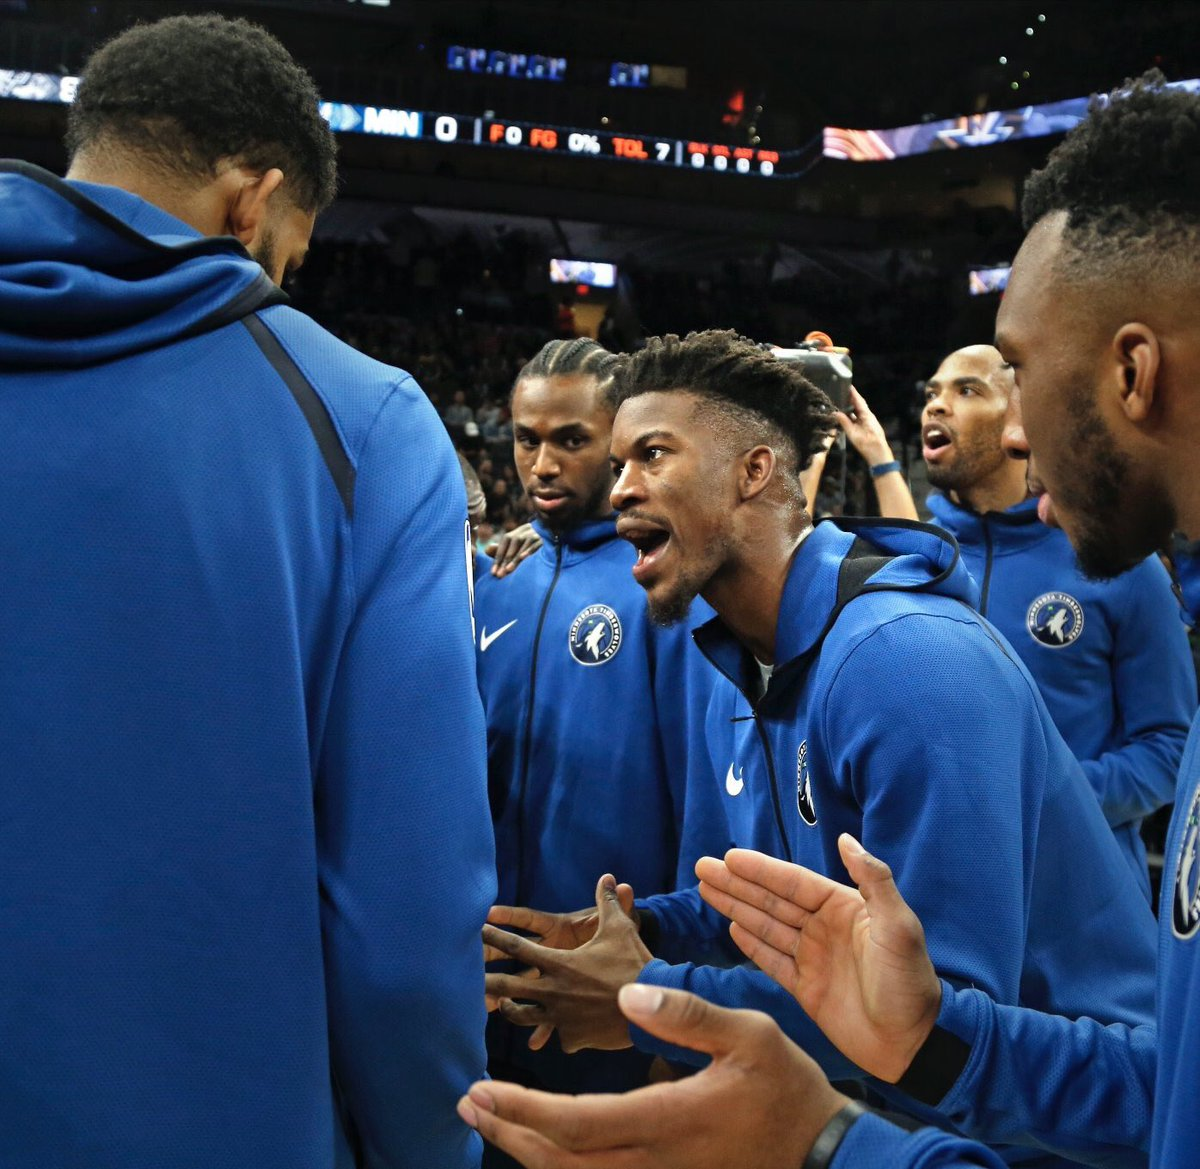 The way Andrew Wiggins is looking at Jimmy Butler in this photo sums up everything. <br>http://pic.twitter.com/WXrD7AK5BE